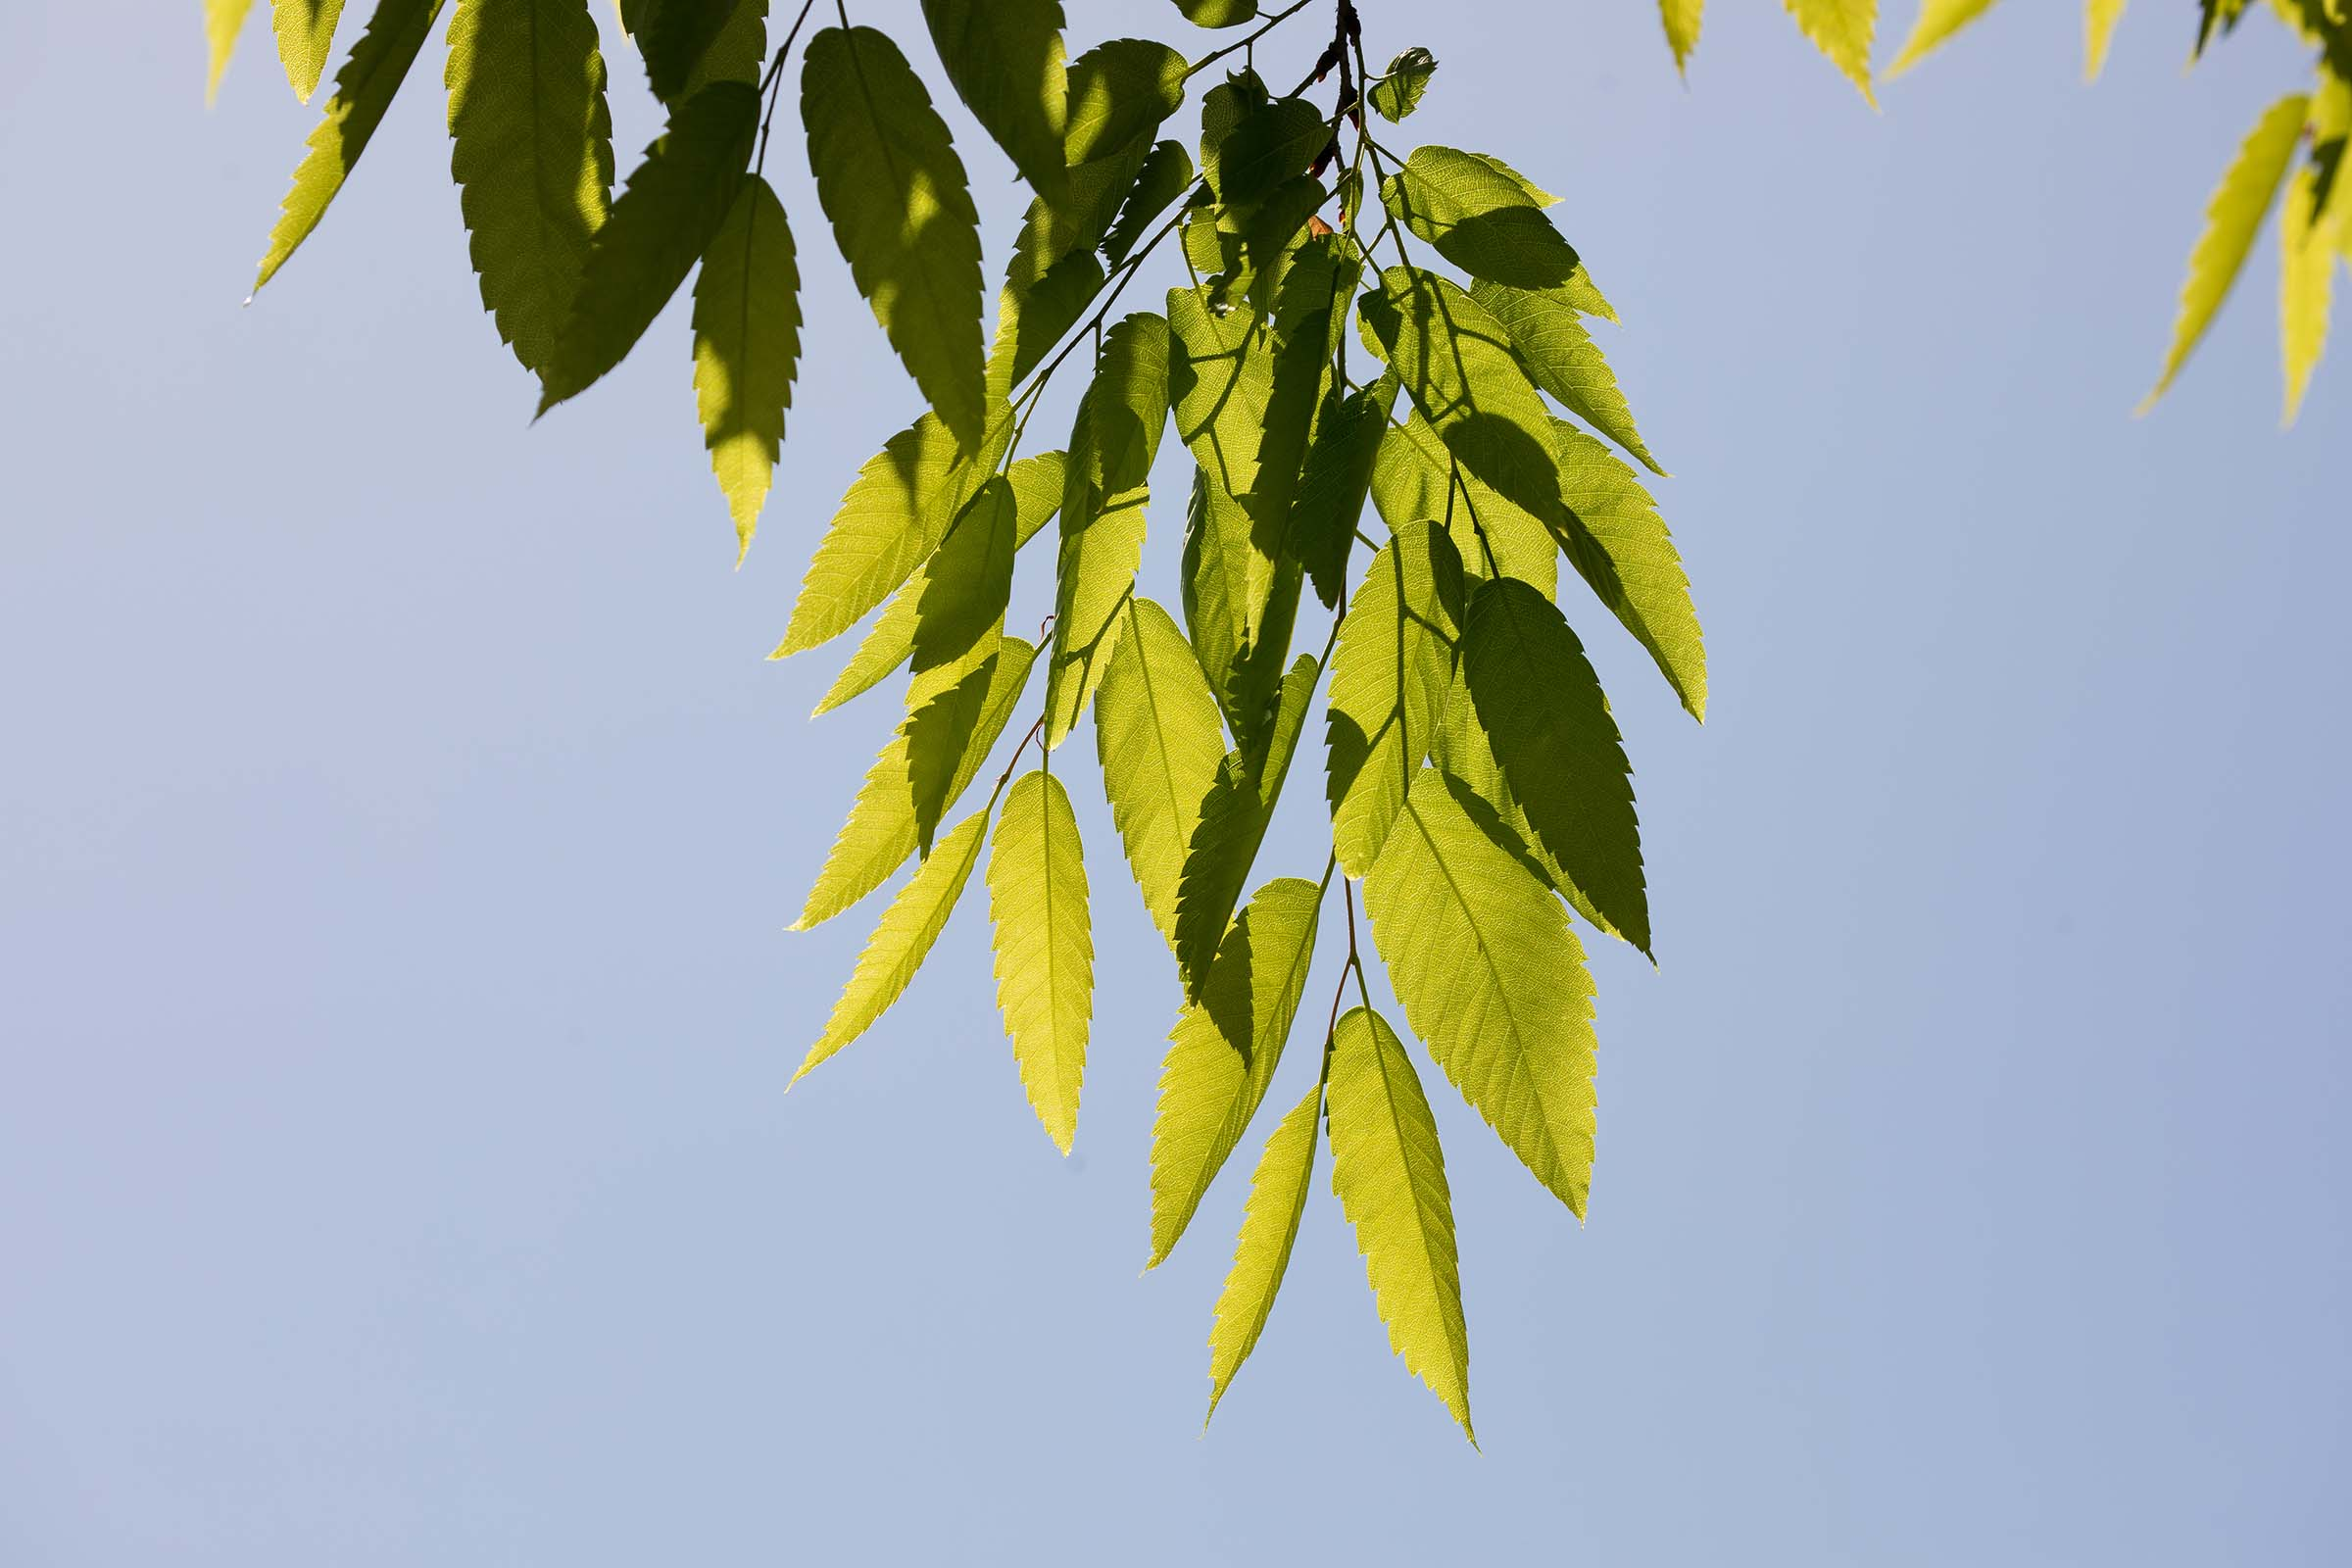 The green leaves of the Japanese Zelcova trees drape down when the wind stops